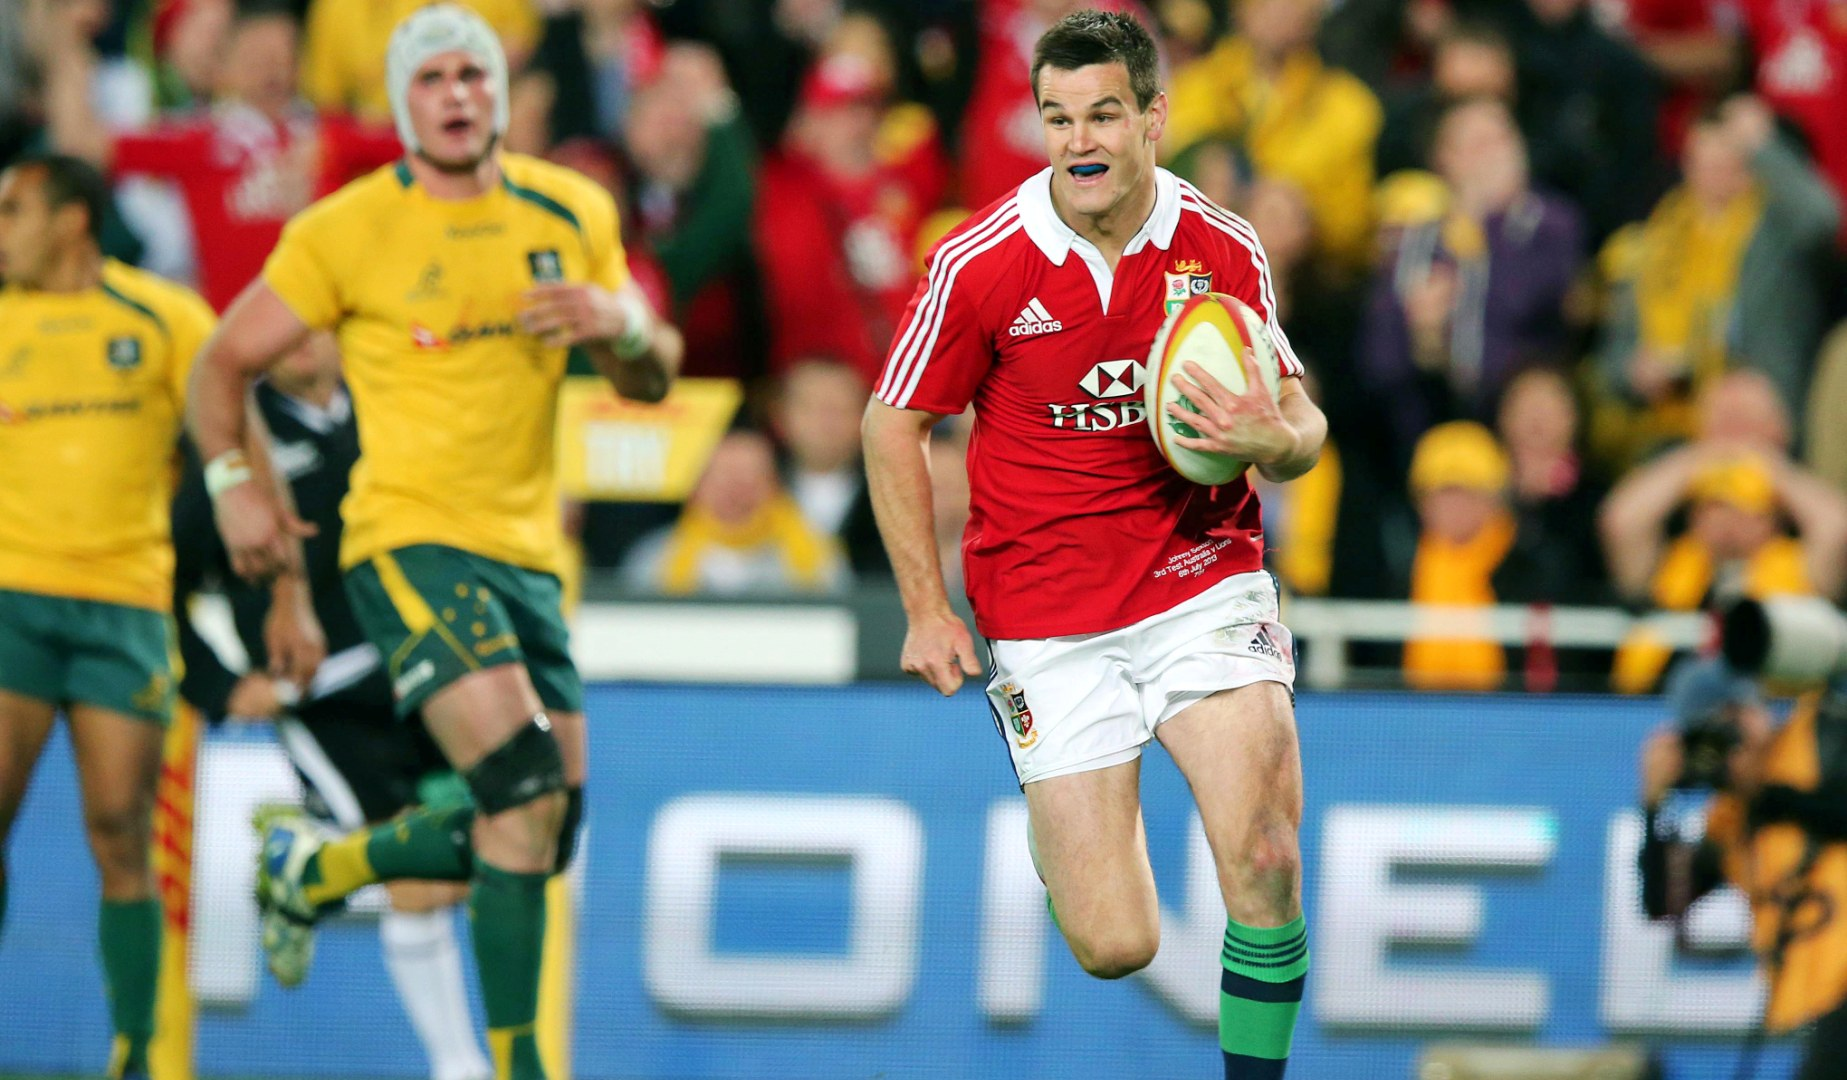 Preview: Sexton preparing to battle with Biggar